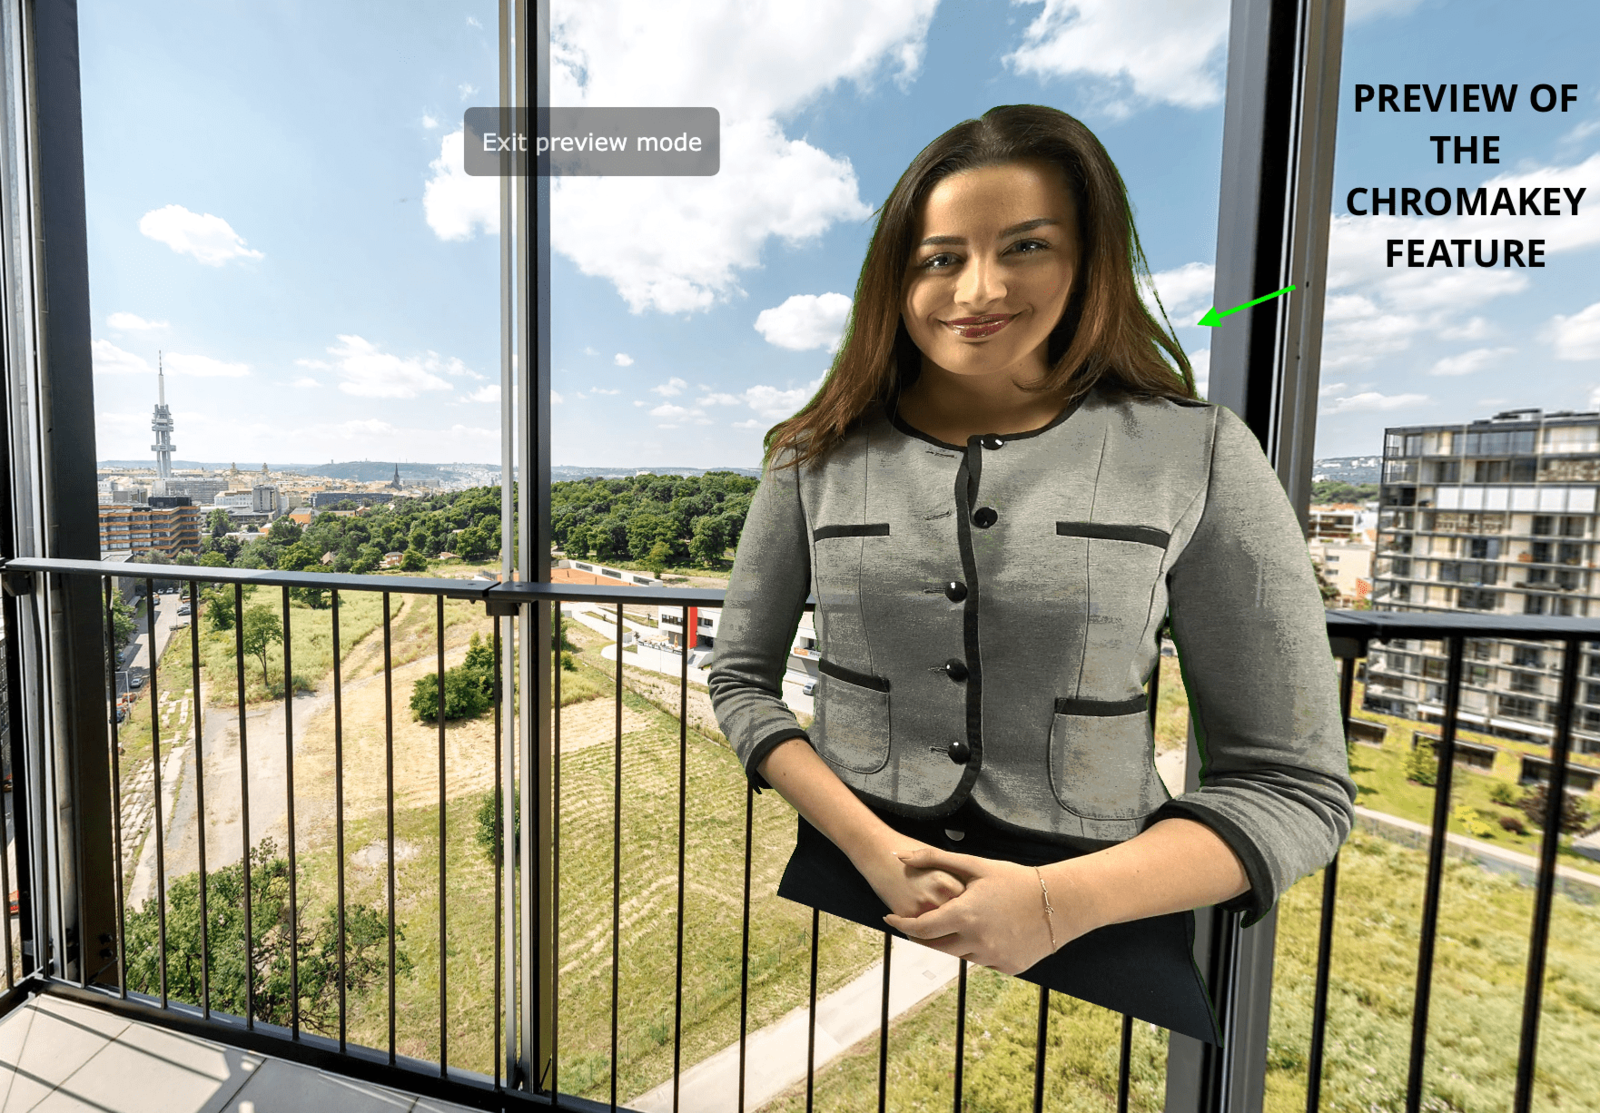 Include a Chromakey video in my virtual tour